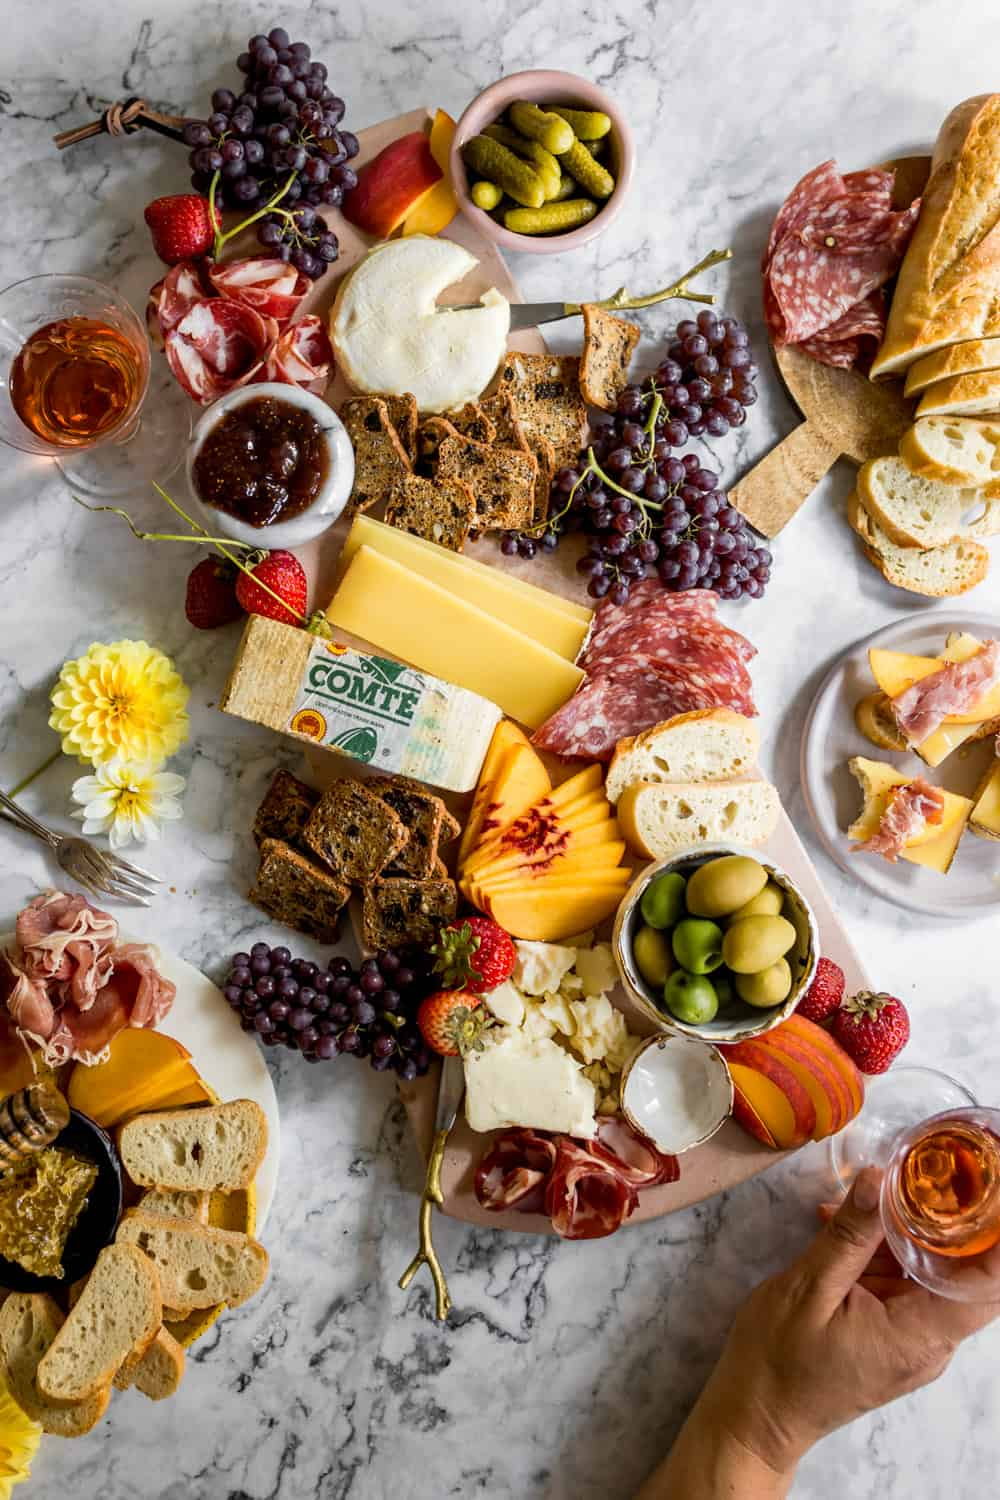 Large platter with cheeses, meats, olives, fruit, and dips.